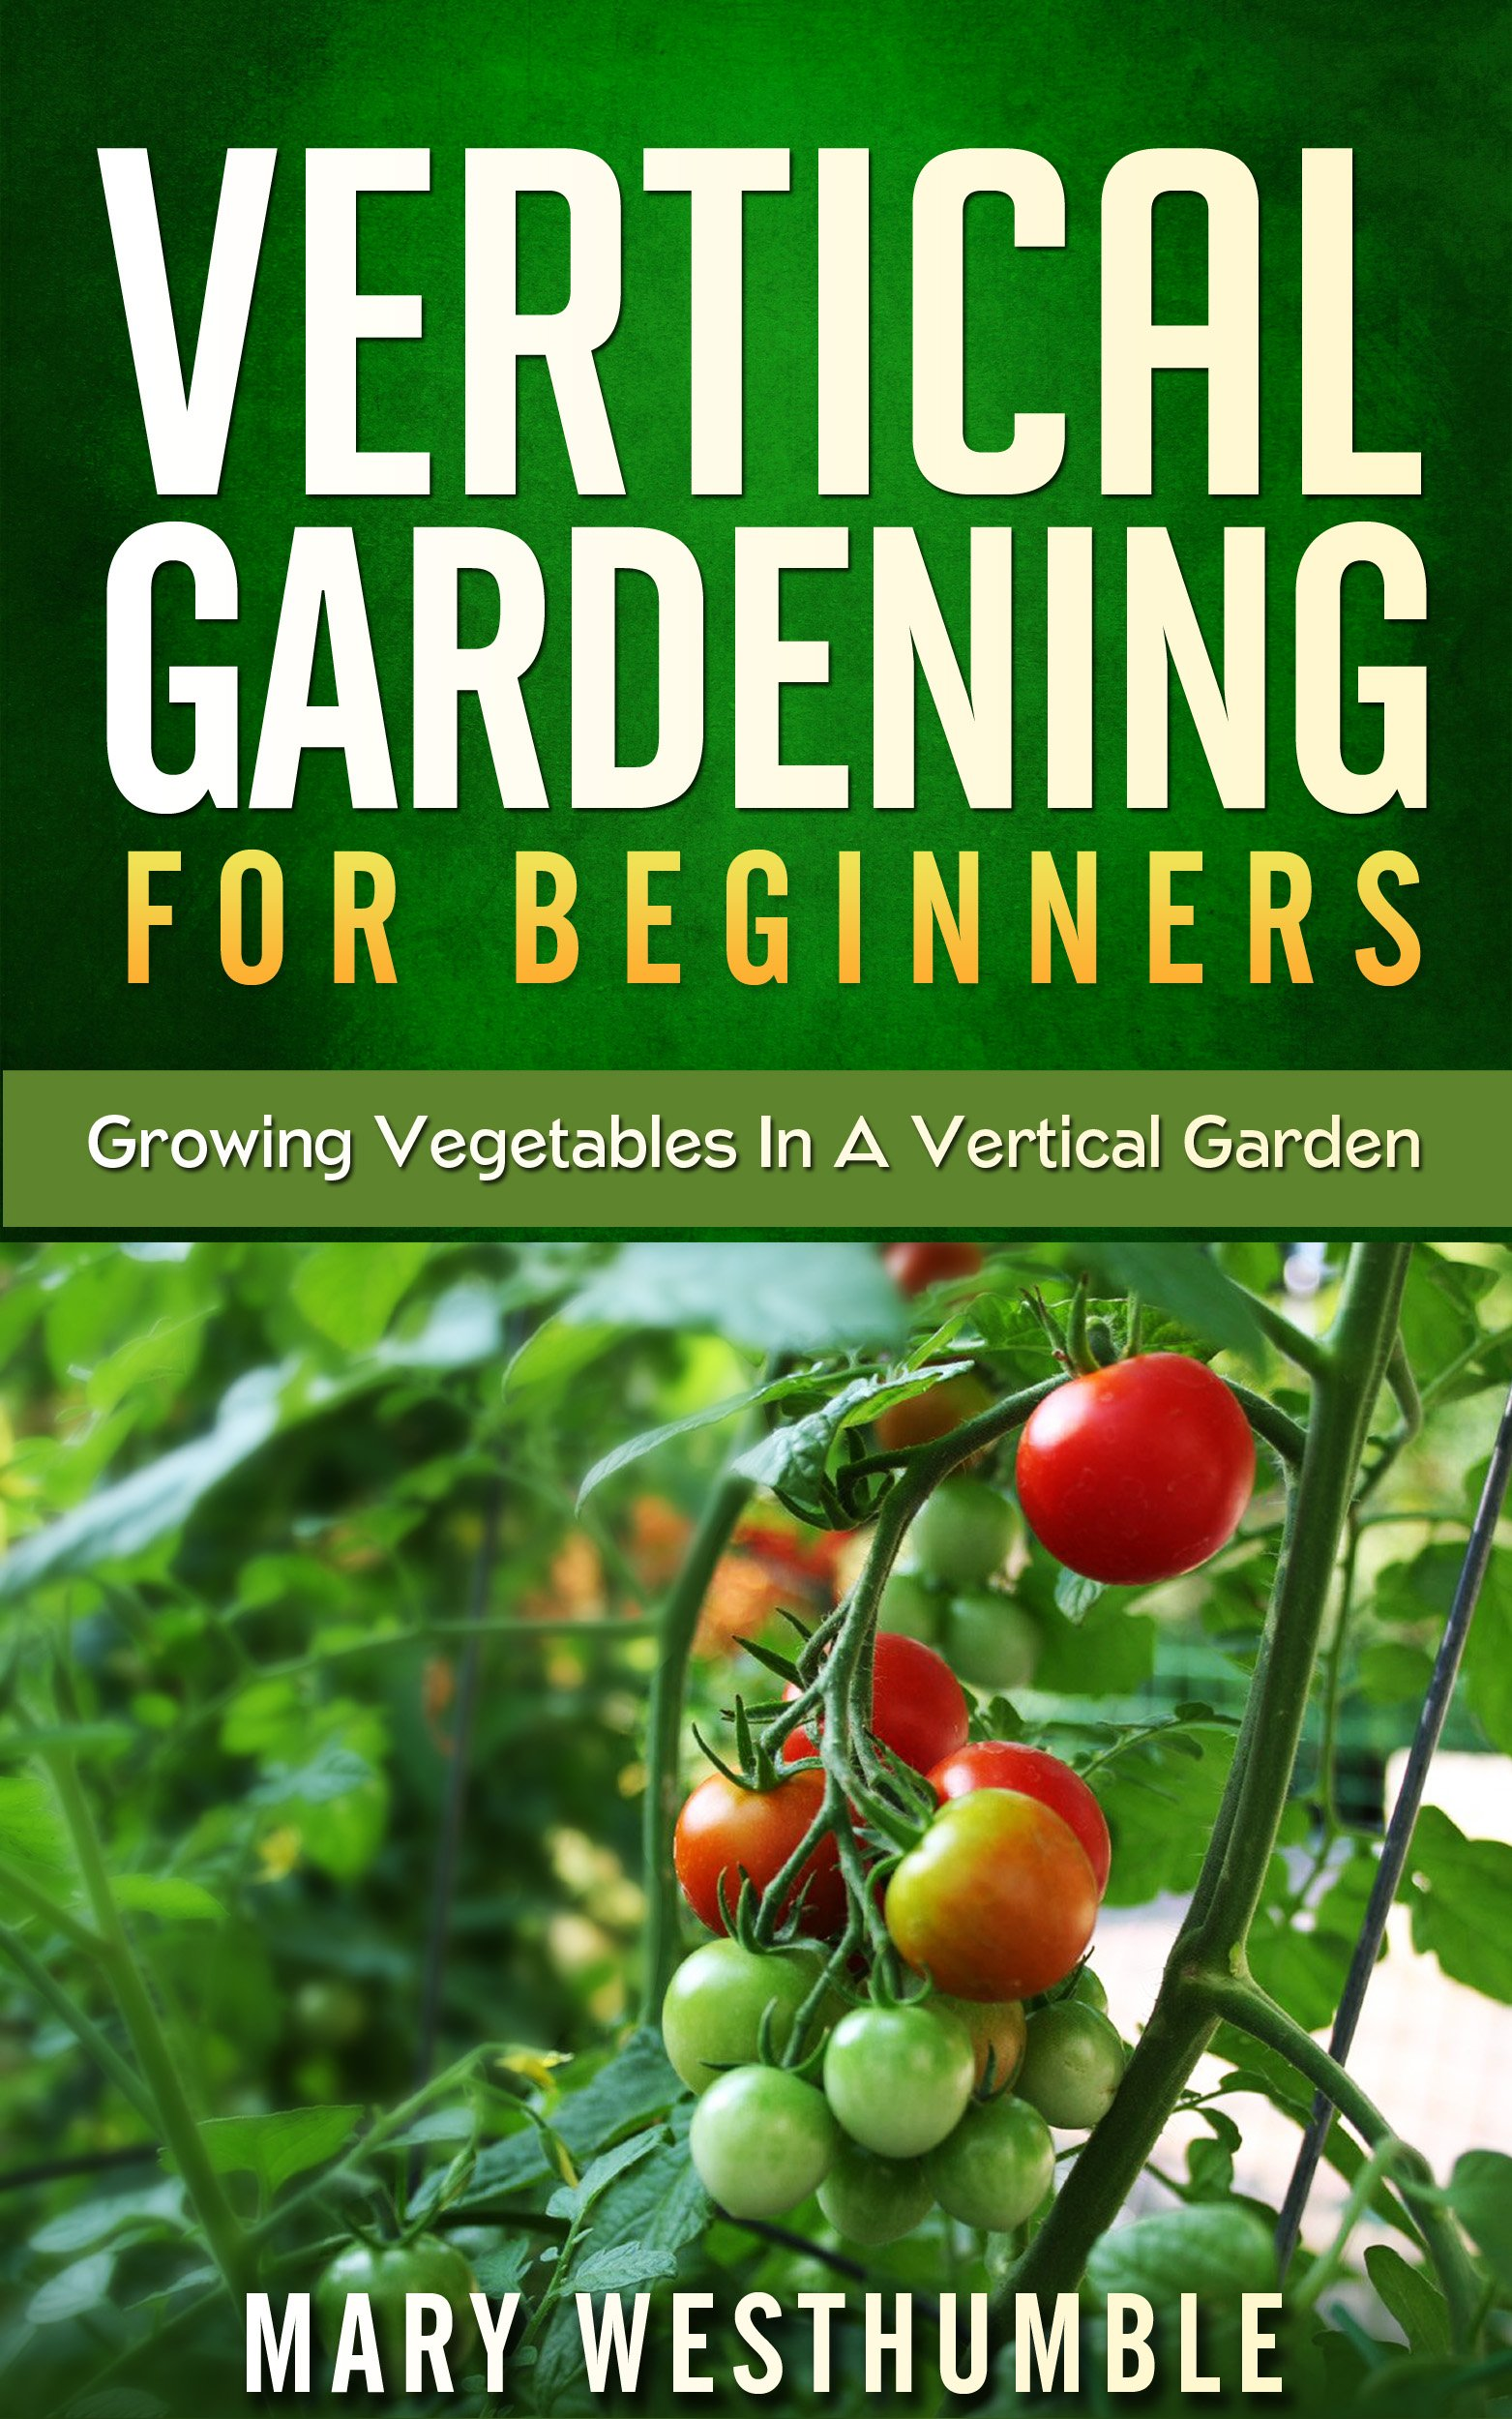 Vertical Gardening For Beginners  Growing Vegetables In A Vertical Garden  Vertical Gardening Vertical Garden Beginners Gardening City Garden Urban ... Beginners How To   English Edition